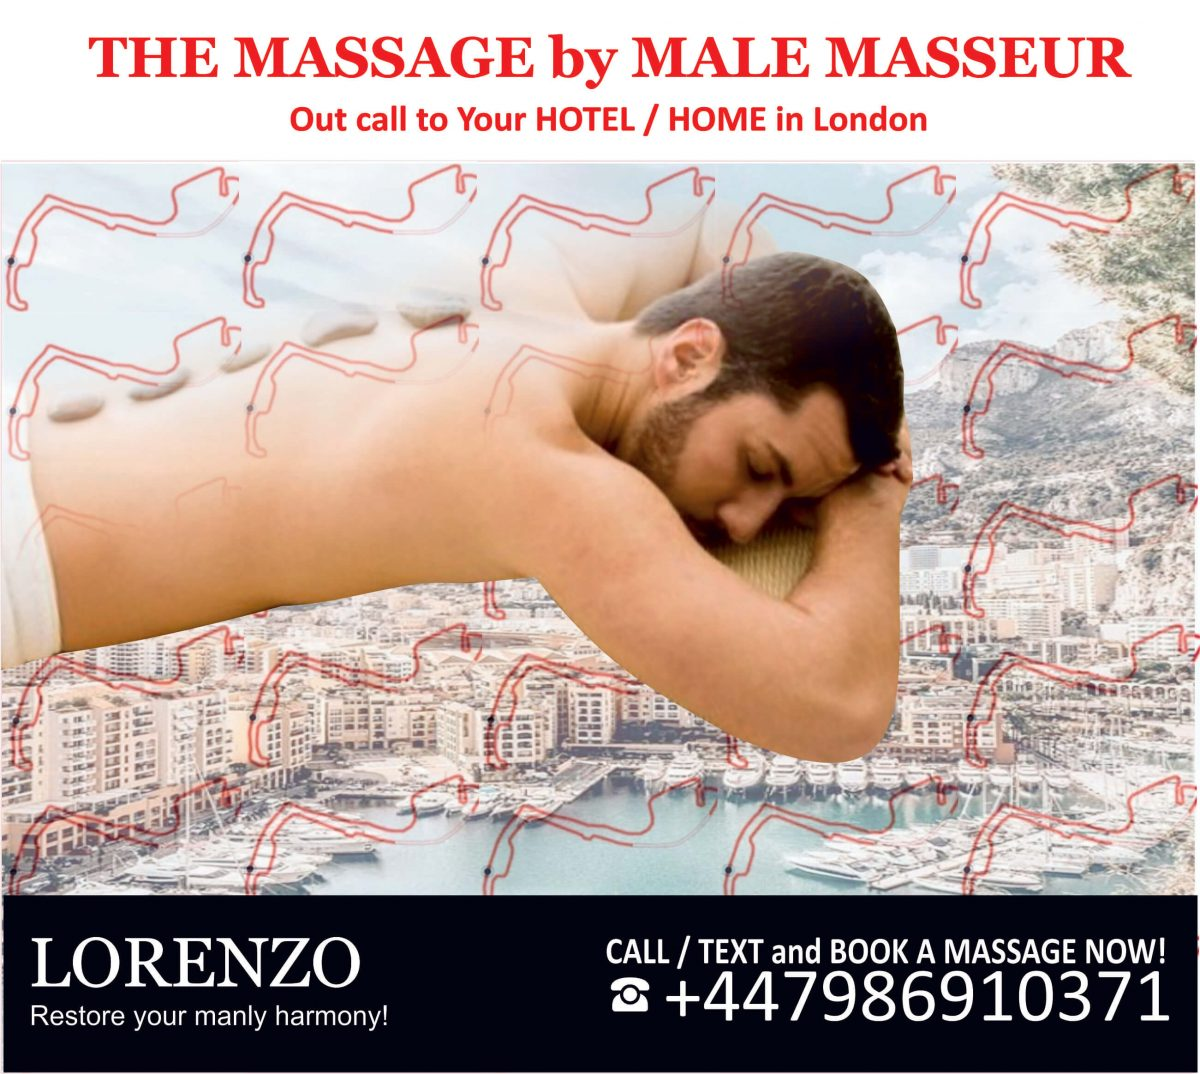 male massage london gay massage london male massage gay massage male to male massage best male massage full body massage male urban massage massage london male massage (4)